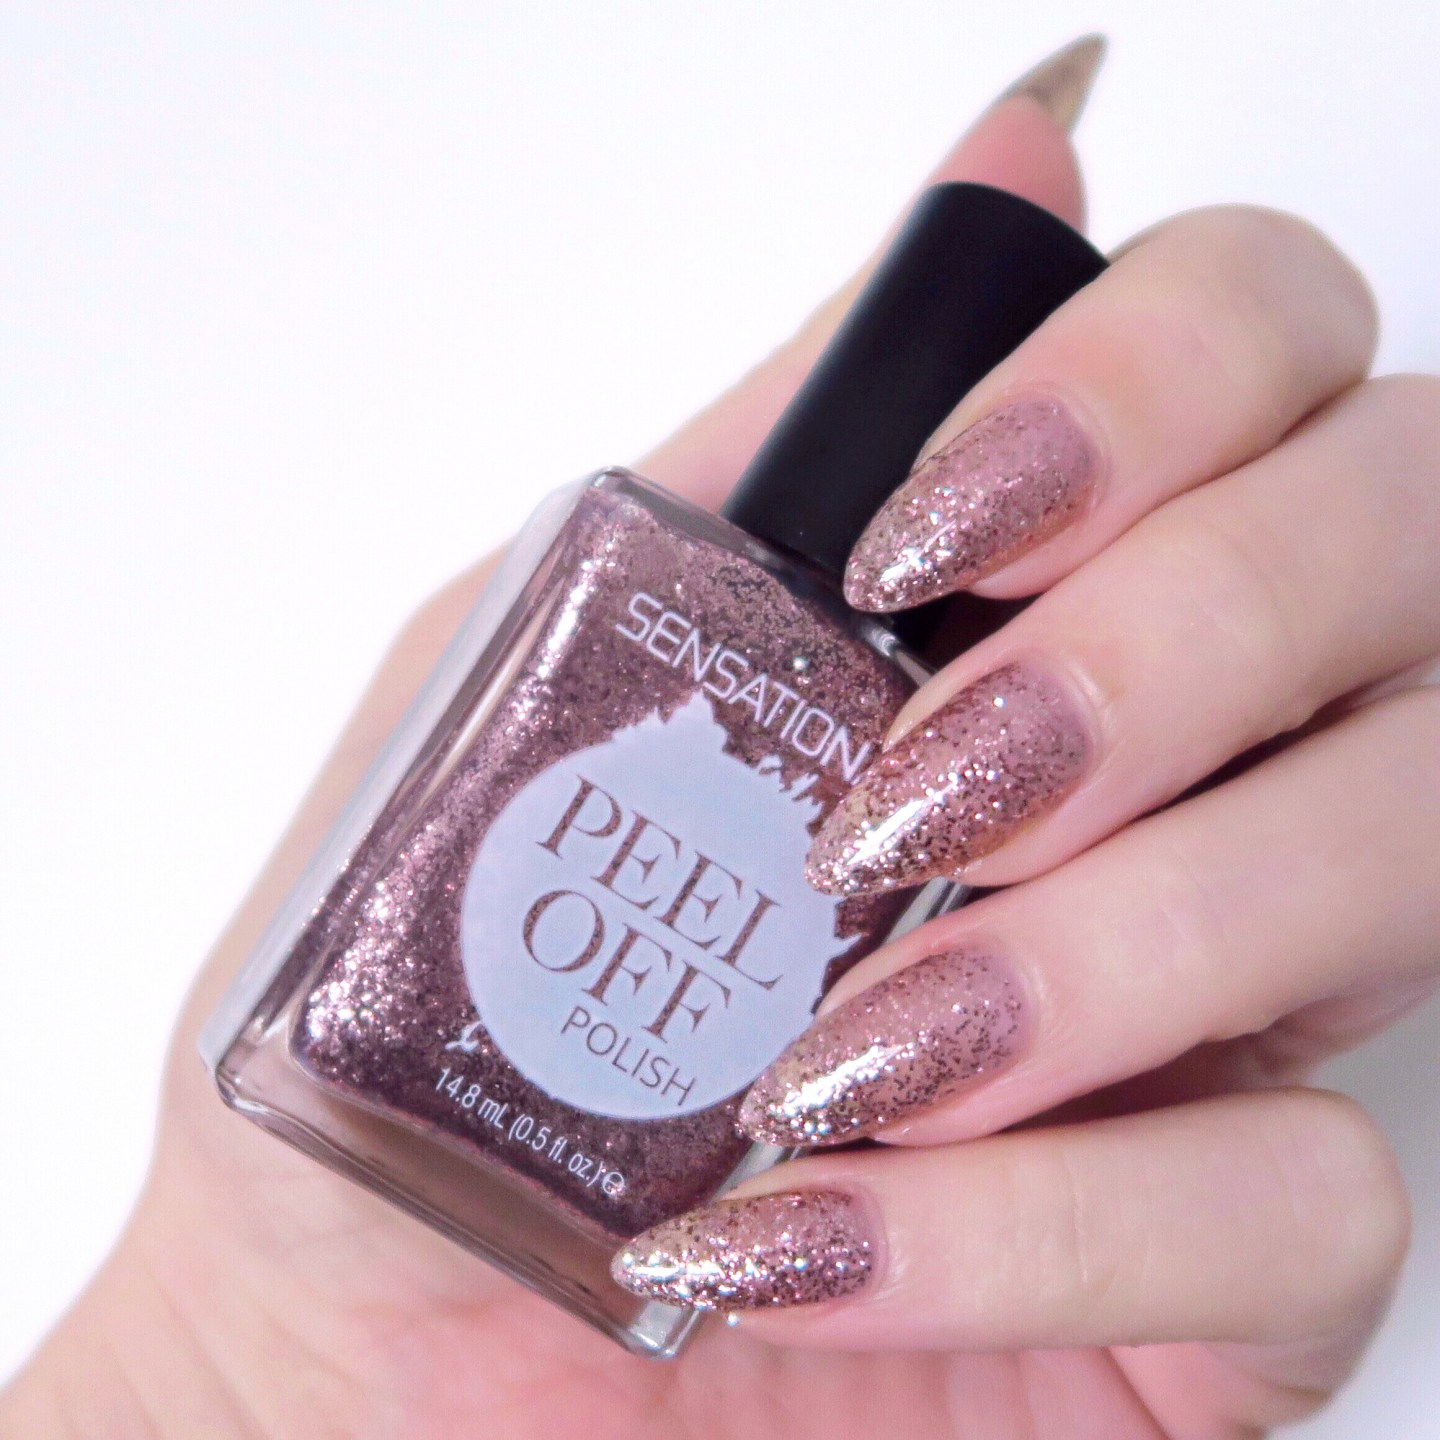 SensatioNail 'Good As Rose Gold'